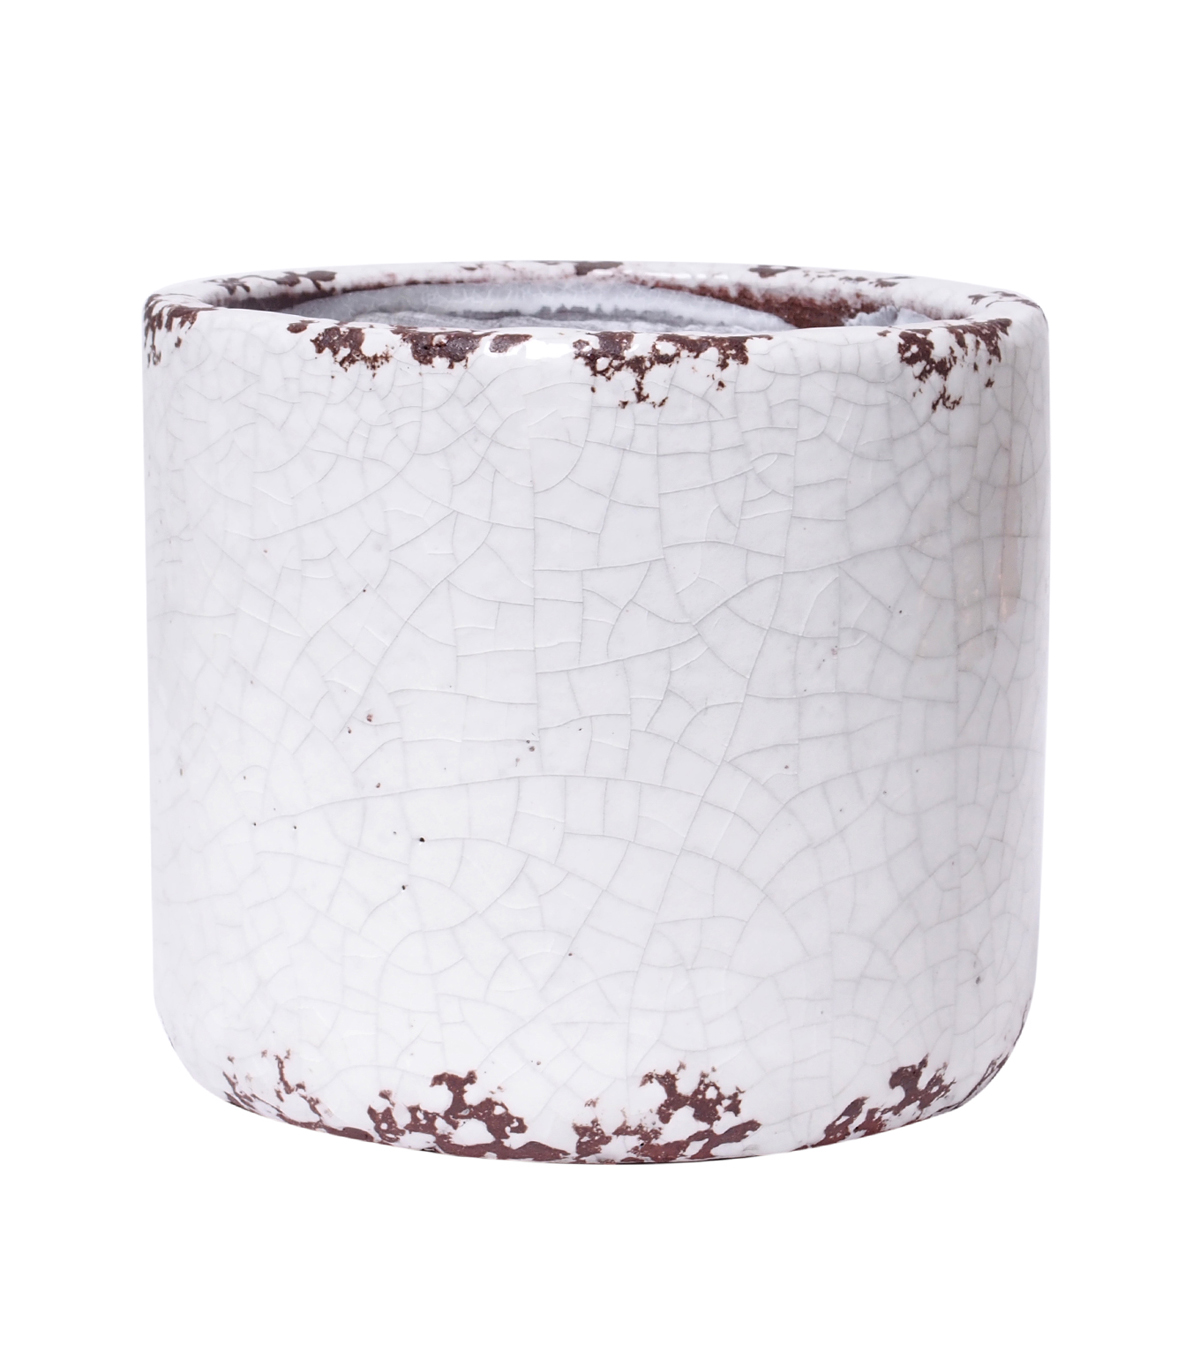 Bloom Room Small Ceramic Planter-White Crackle